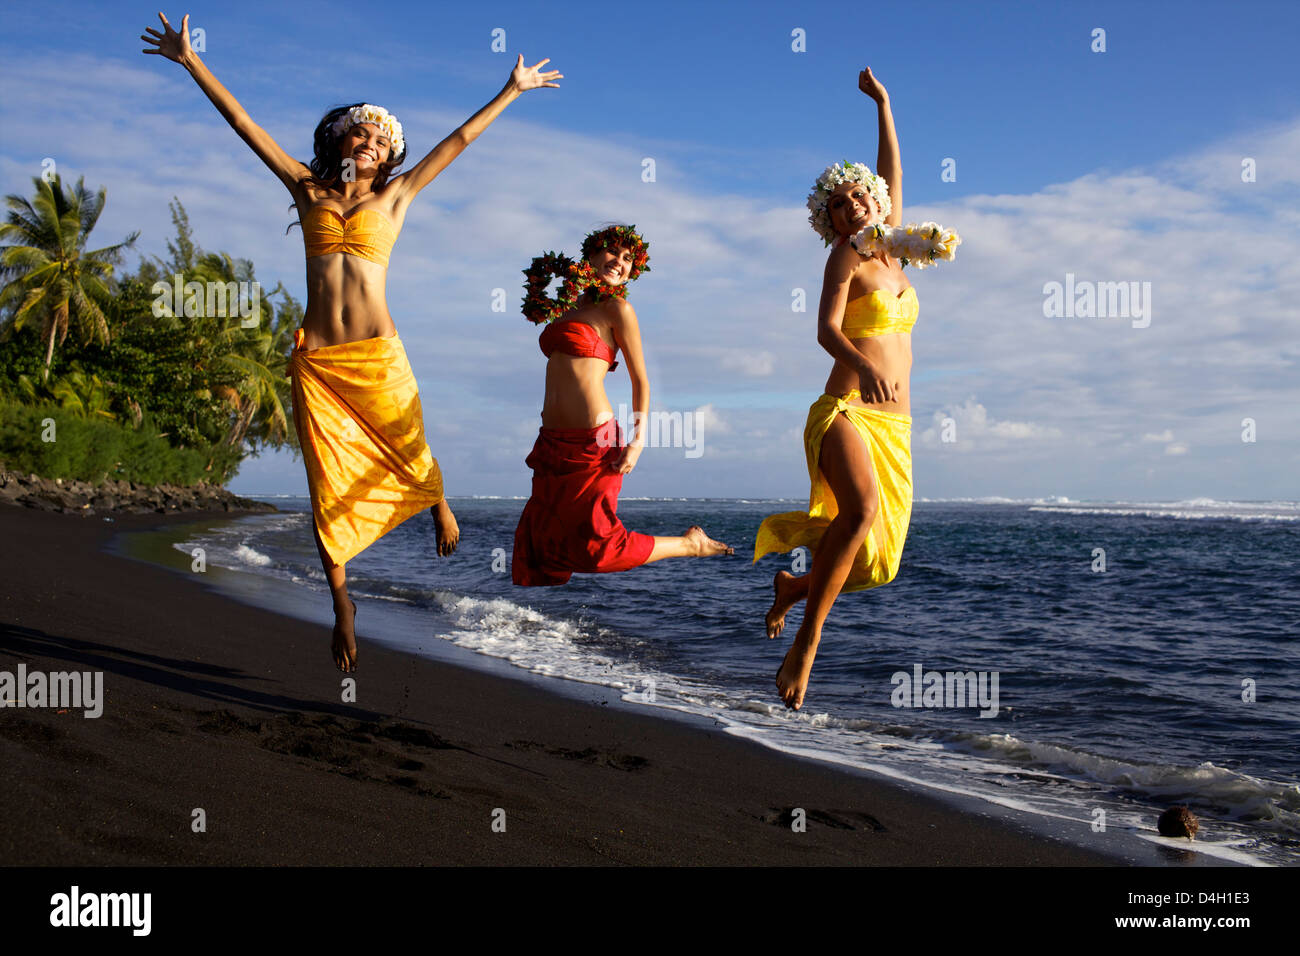 Marine and friends on the west coast beach of Tahiti, in Punauia, Society Islands, French Polynesia Islands Stock Photo